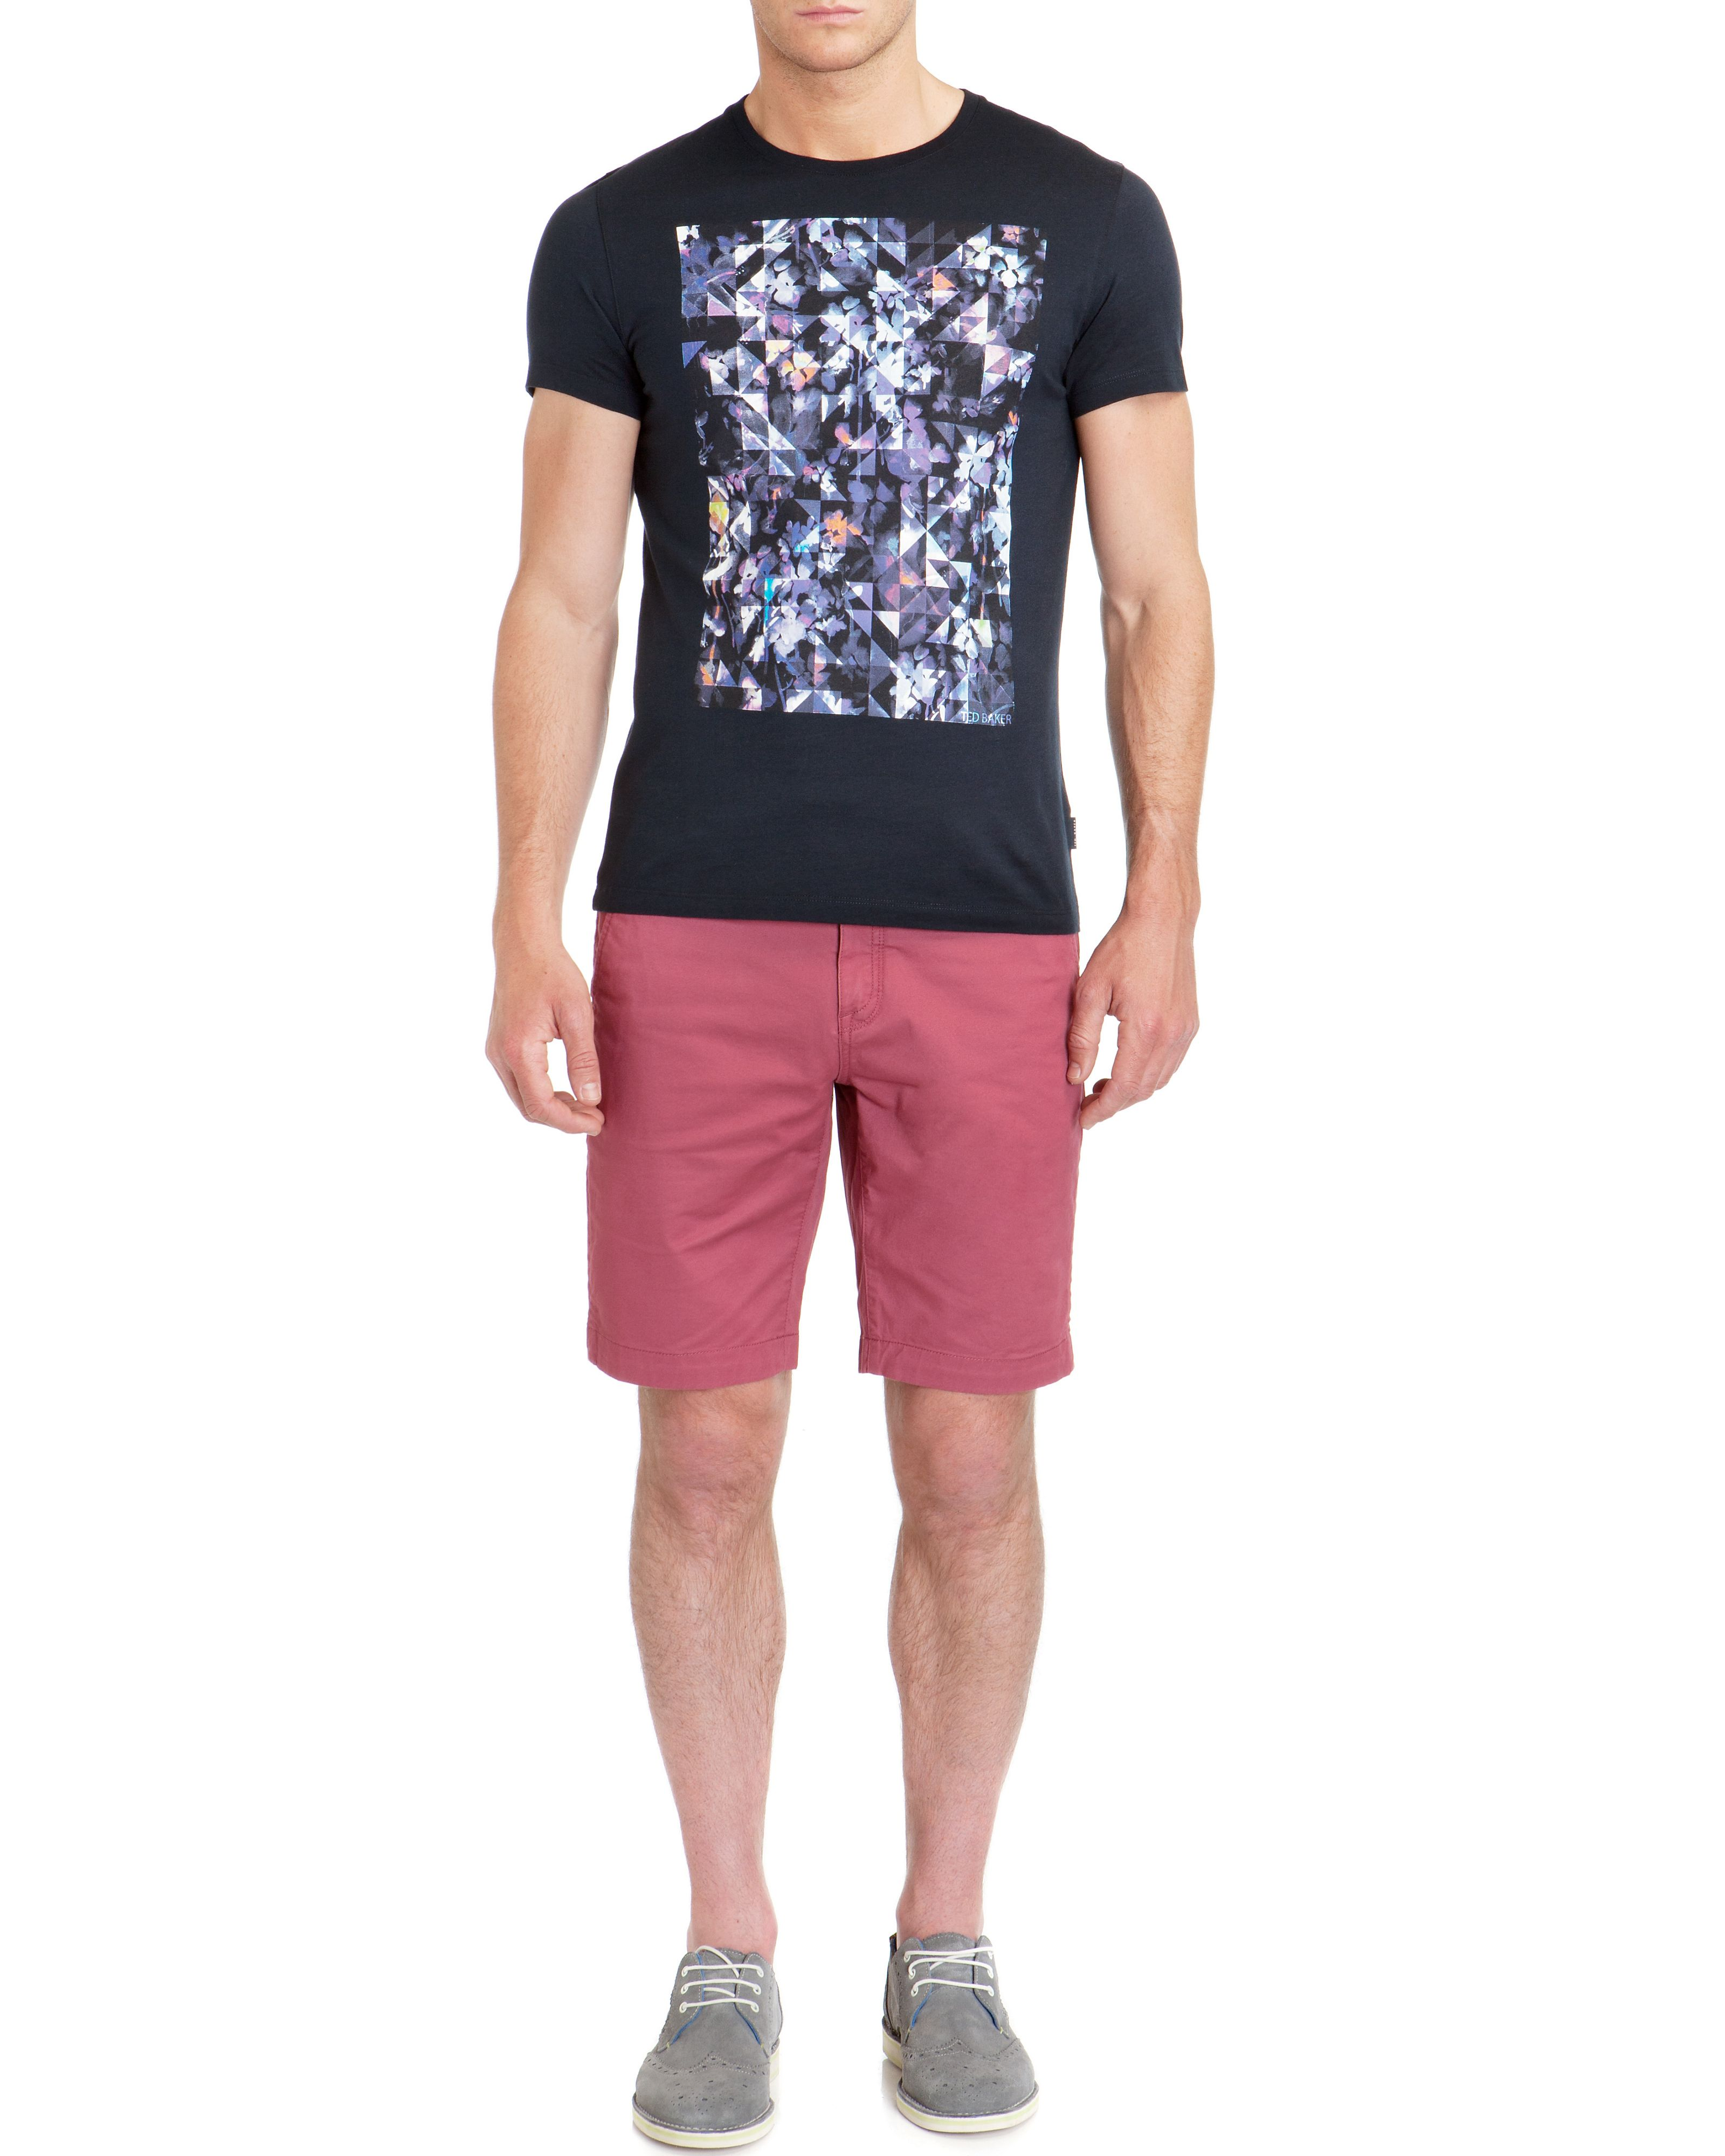 Salen graphic print t-shirt